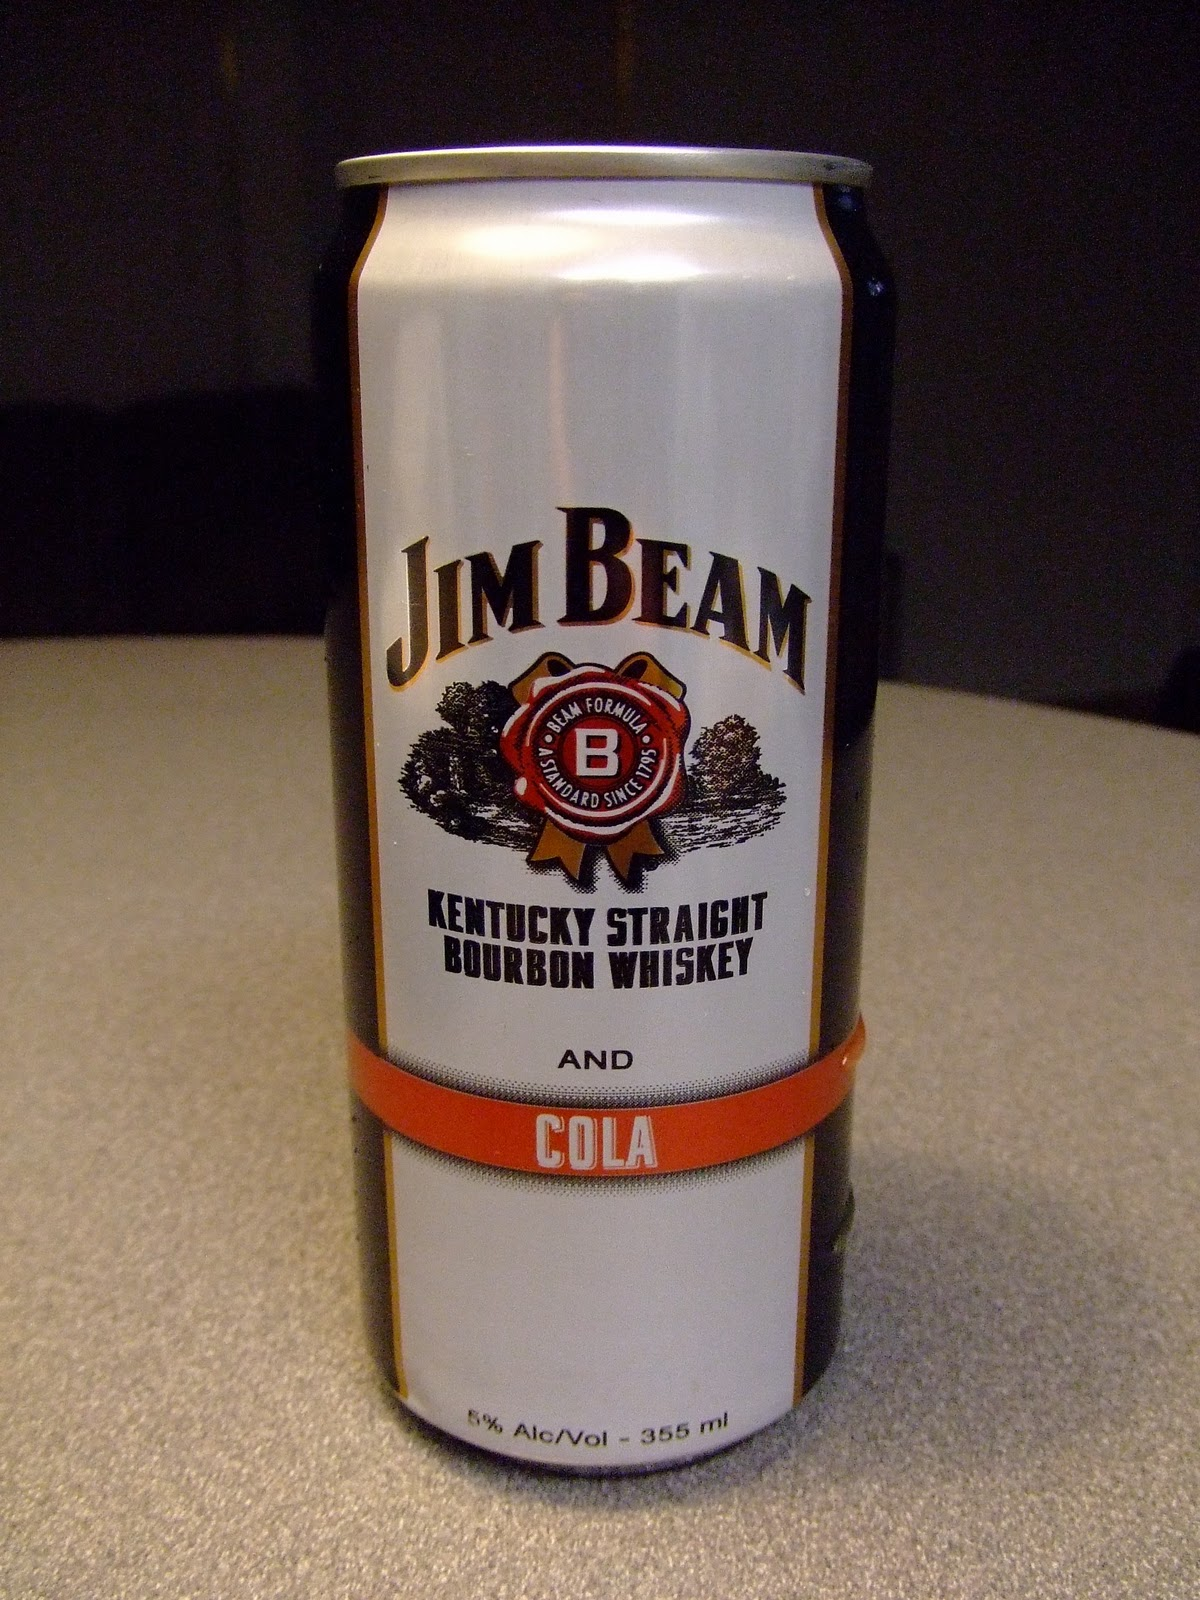 Drinkable Review: Jim Beam Pre-mixed Cocktails